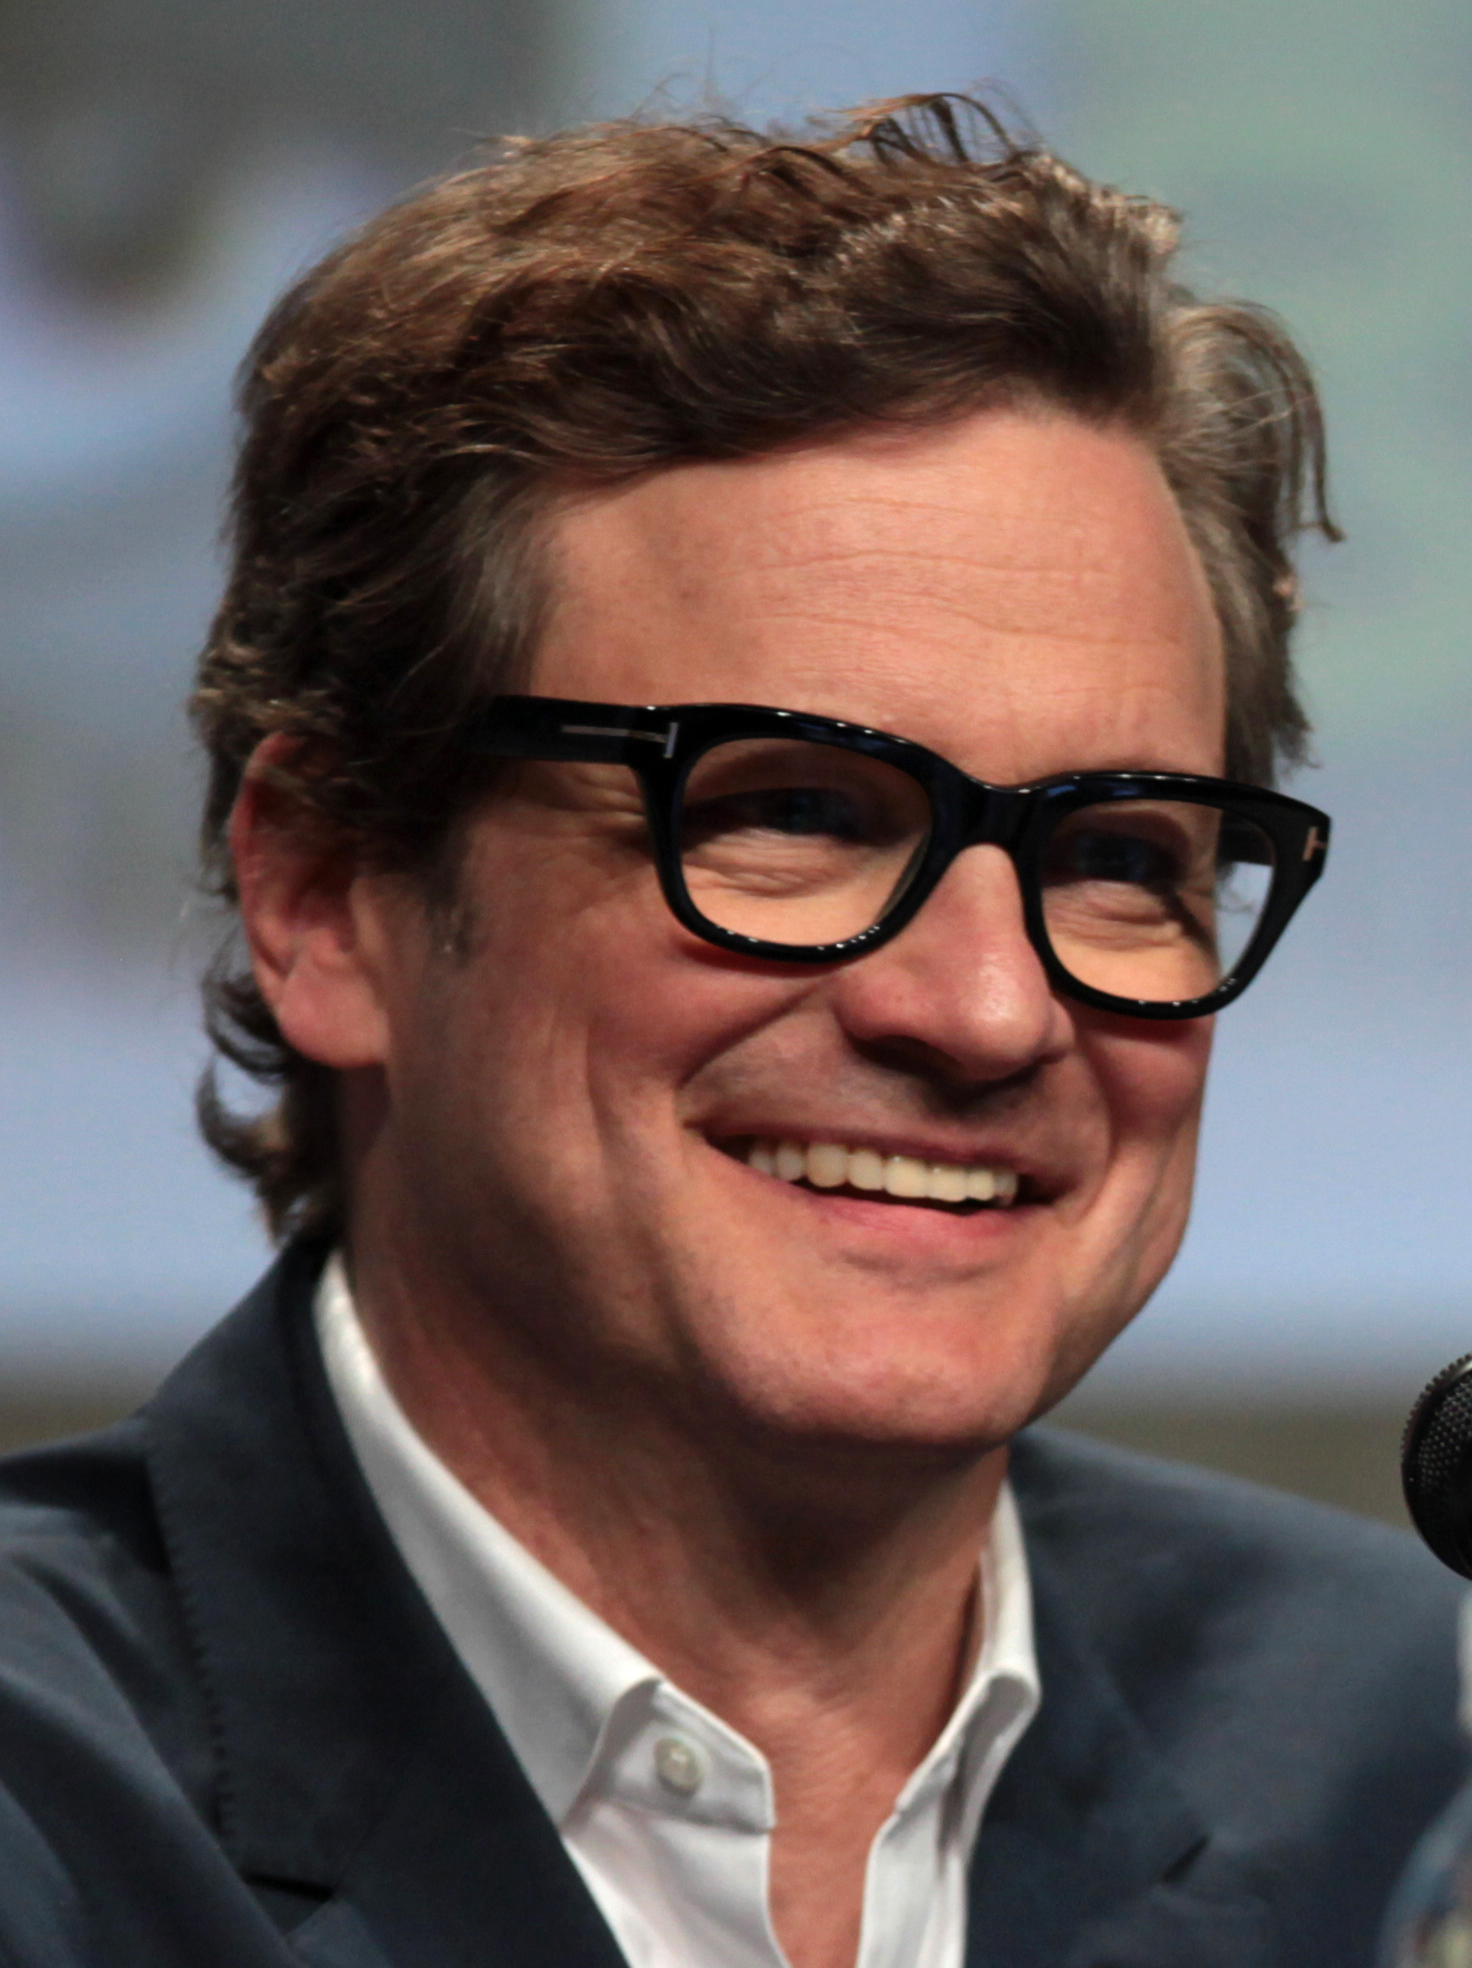 Cittadinanza italiana per Colin Firth